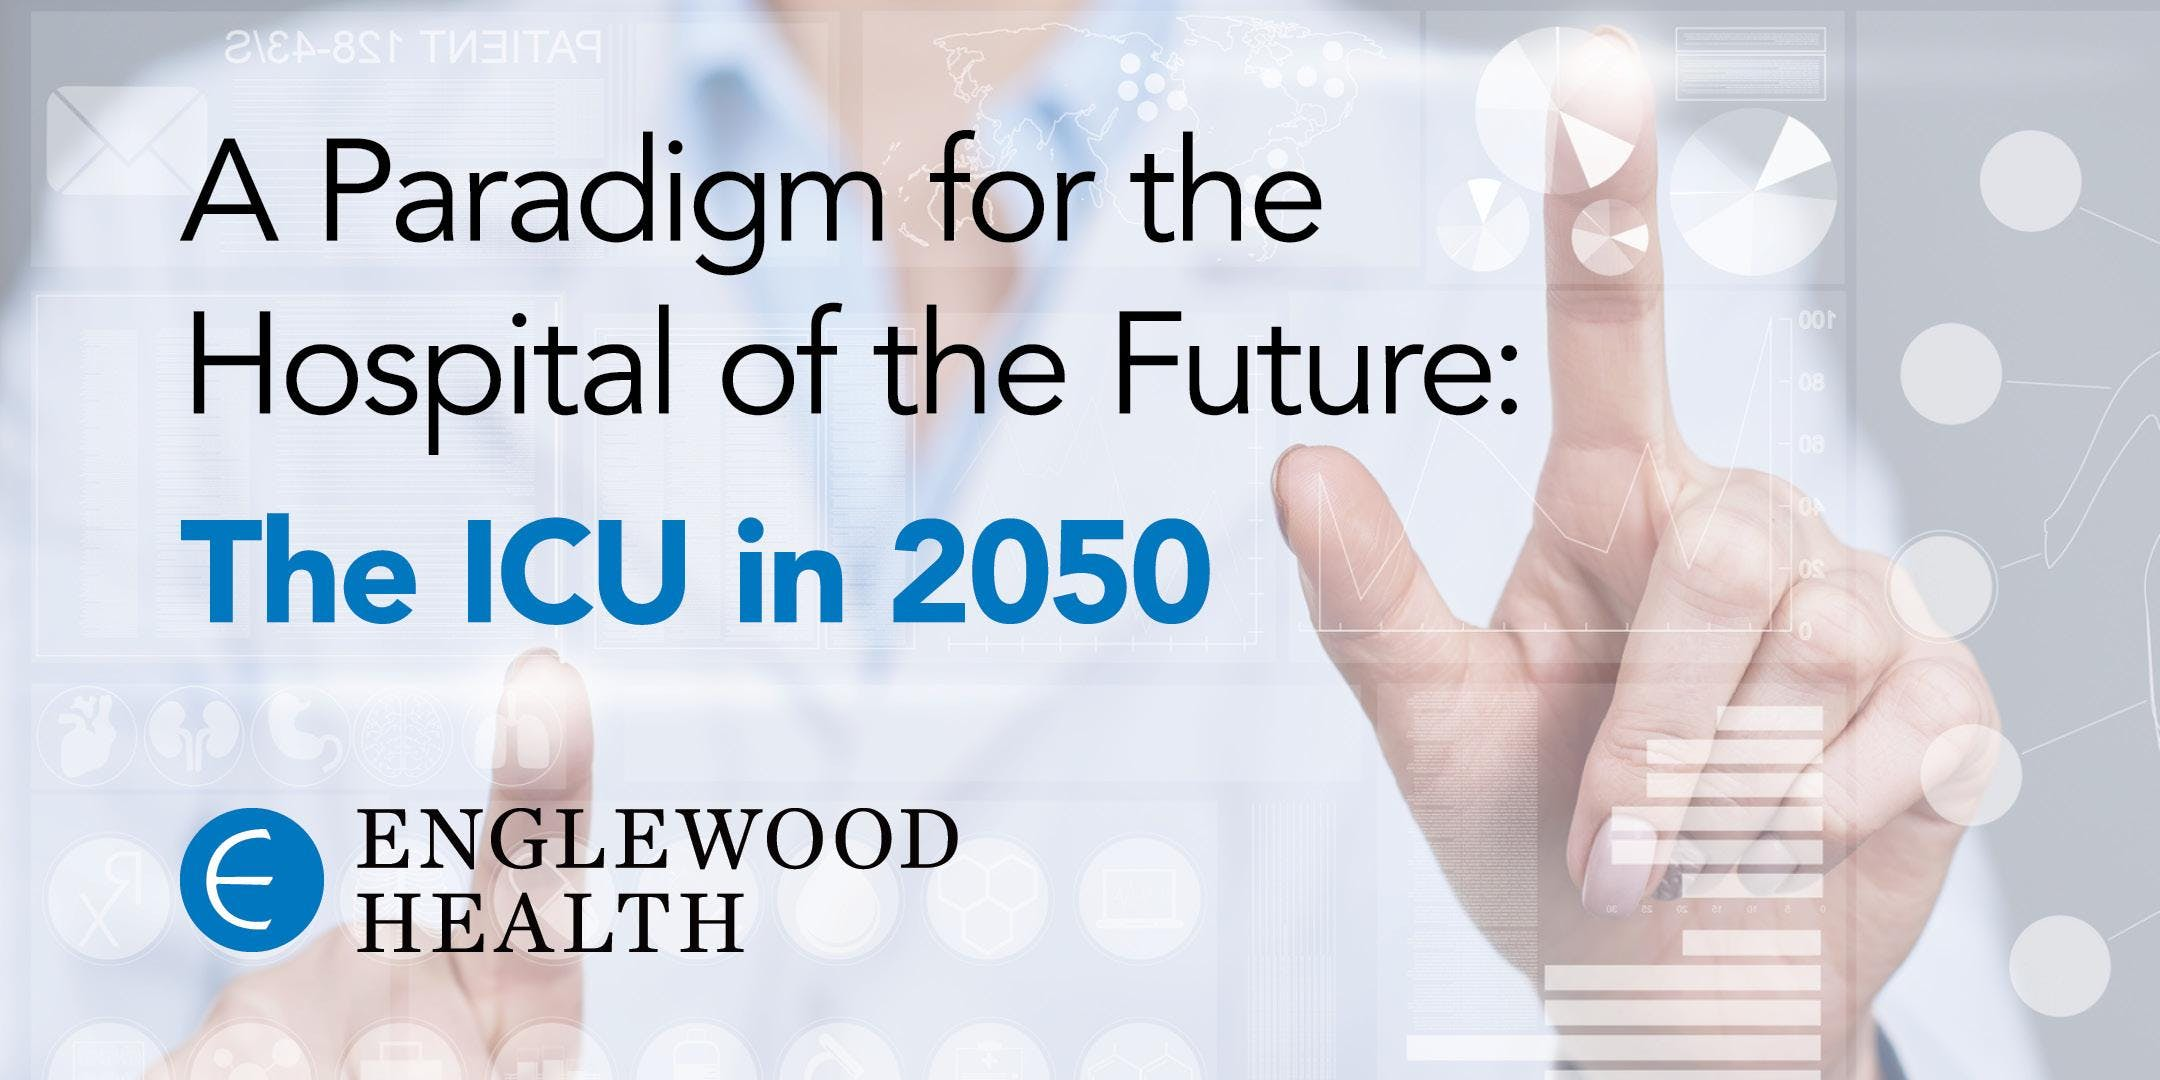 More info: A Paradigm for the Hospital of the Future: The ICU in 2050